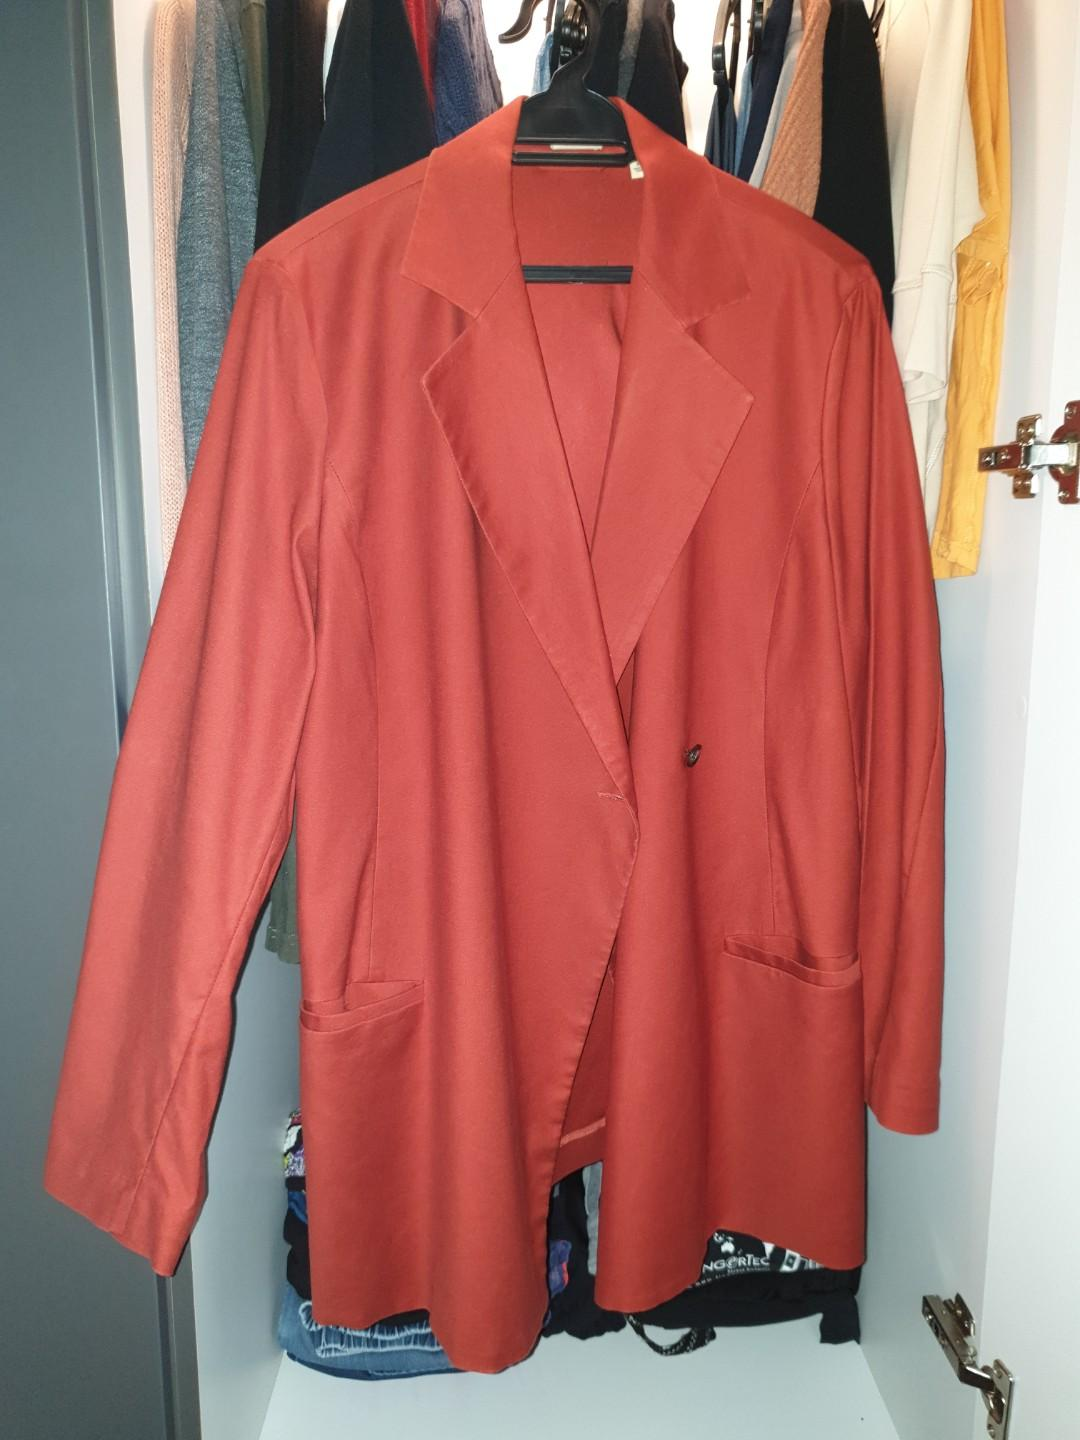 Uniqlo Maroon Trench Coat Blazer xl oversized